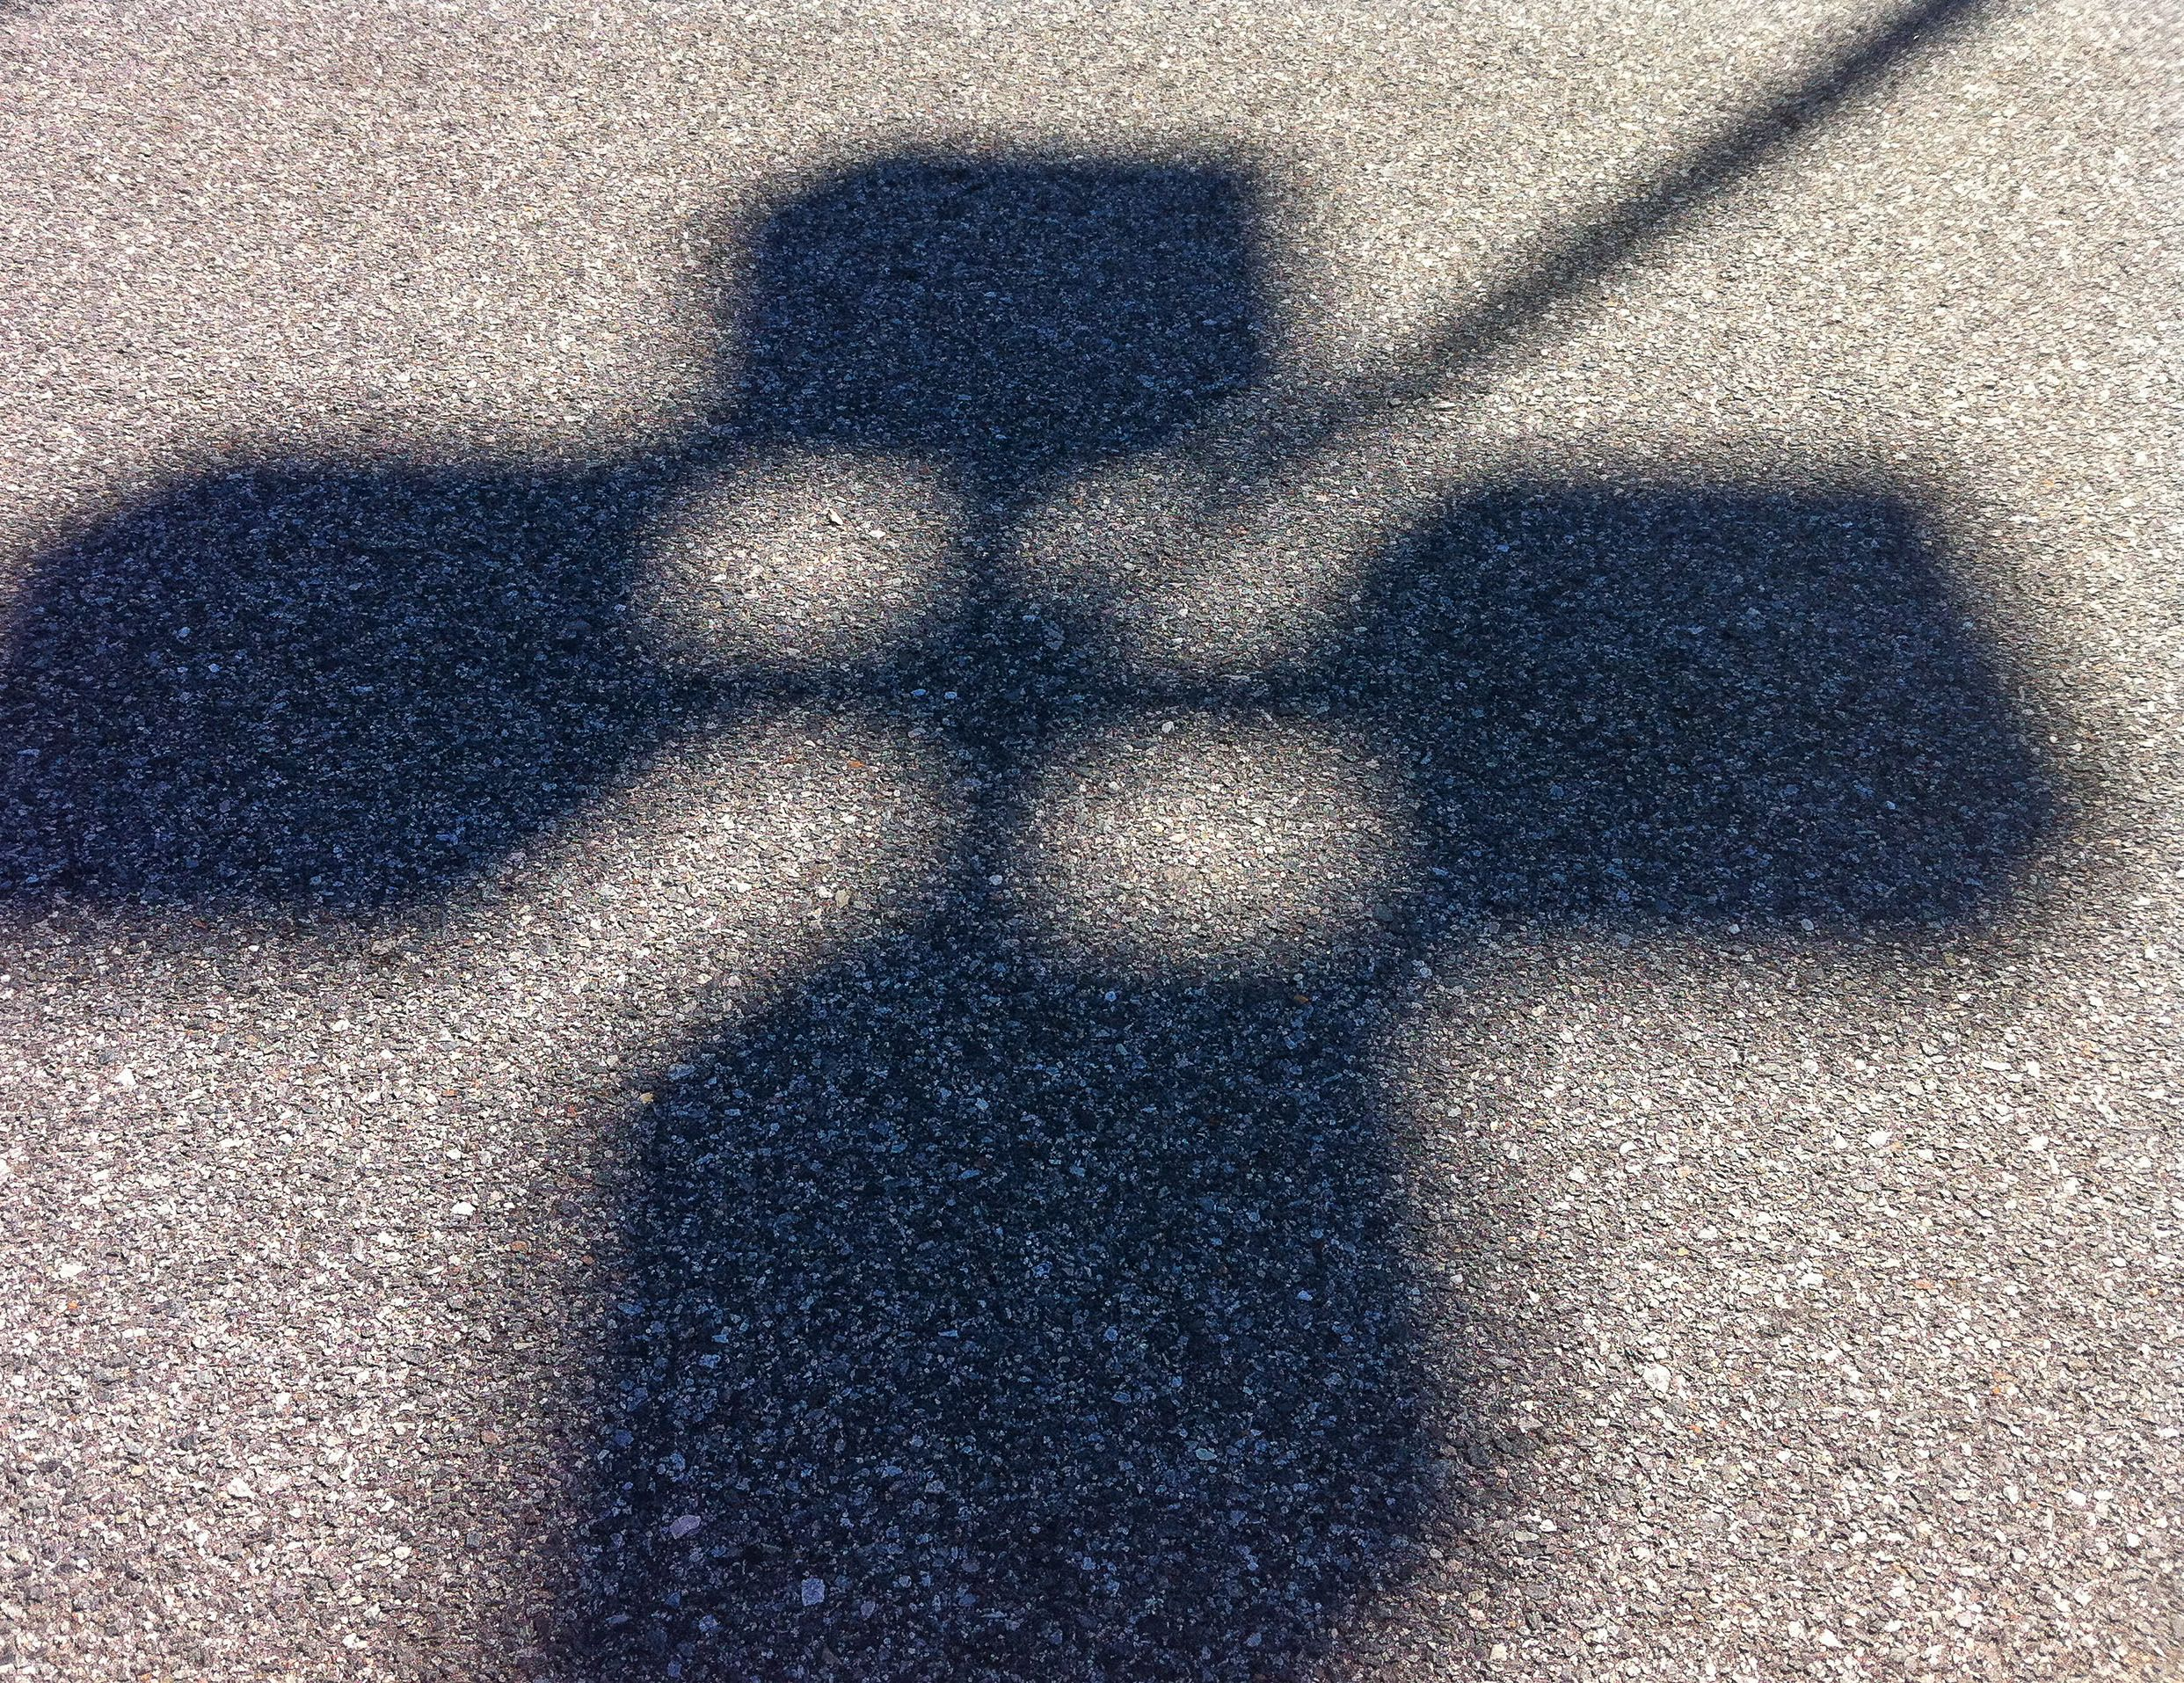 The shadow of a light pole on concrete